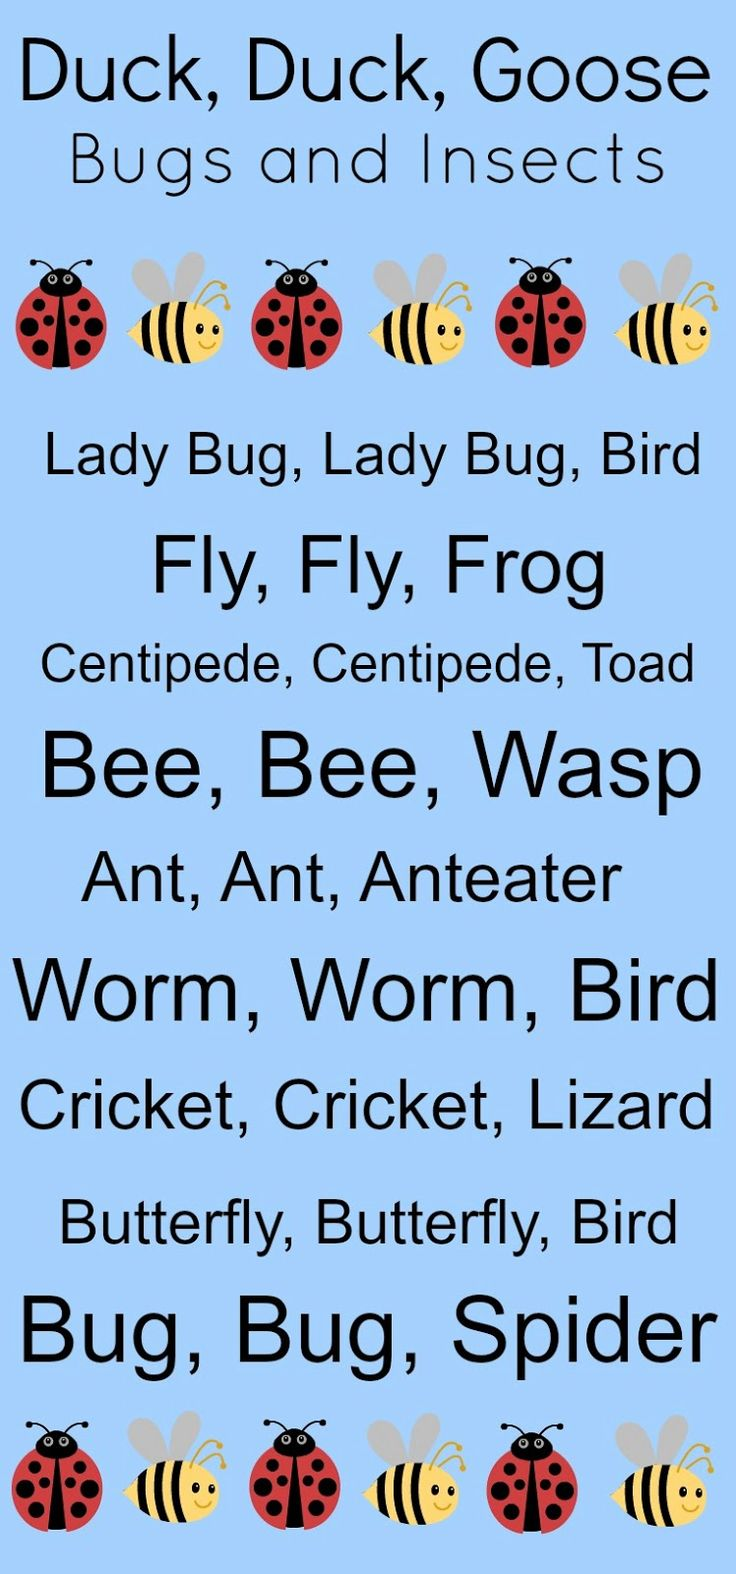 A variation of Duck, Duck Goose that teaches about Bugs and Insects